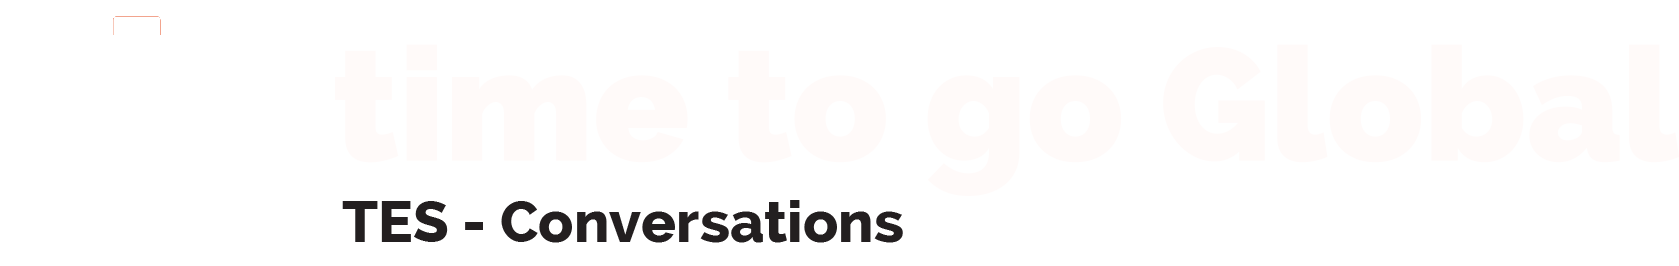 Time To Go Global Logo